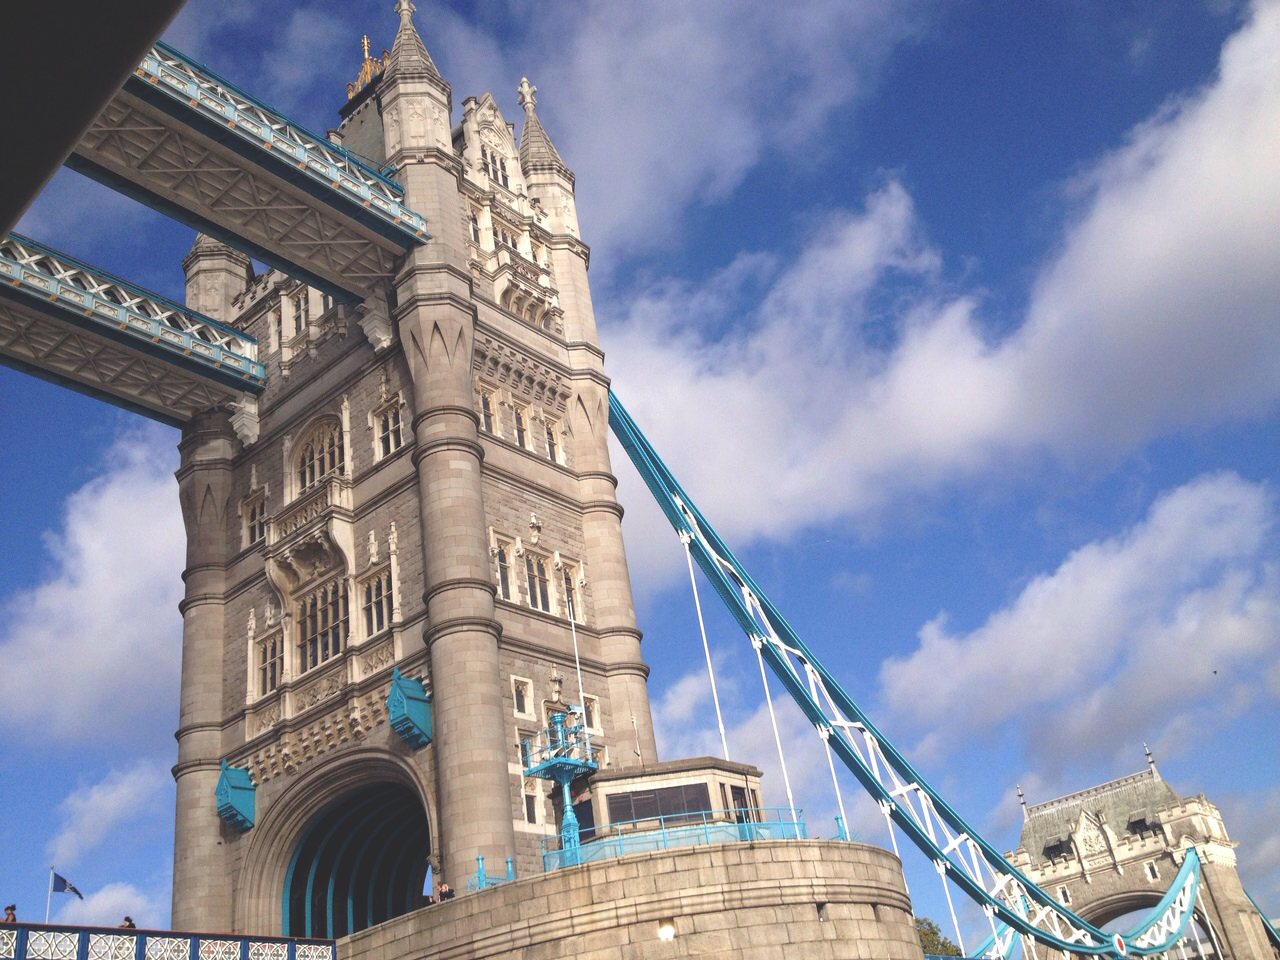 A close up view of the Tower Bridge.